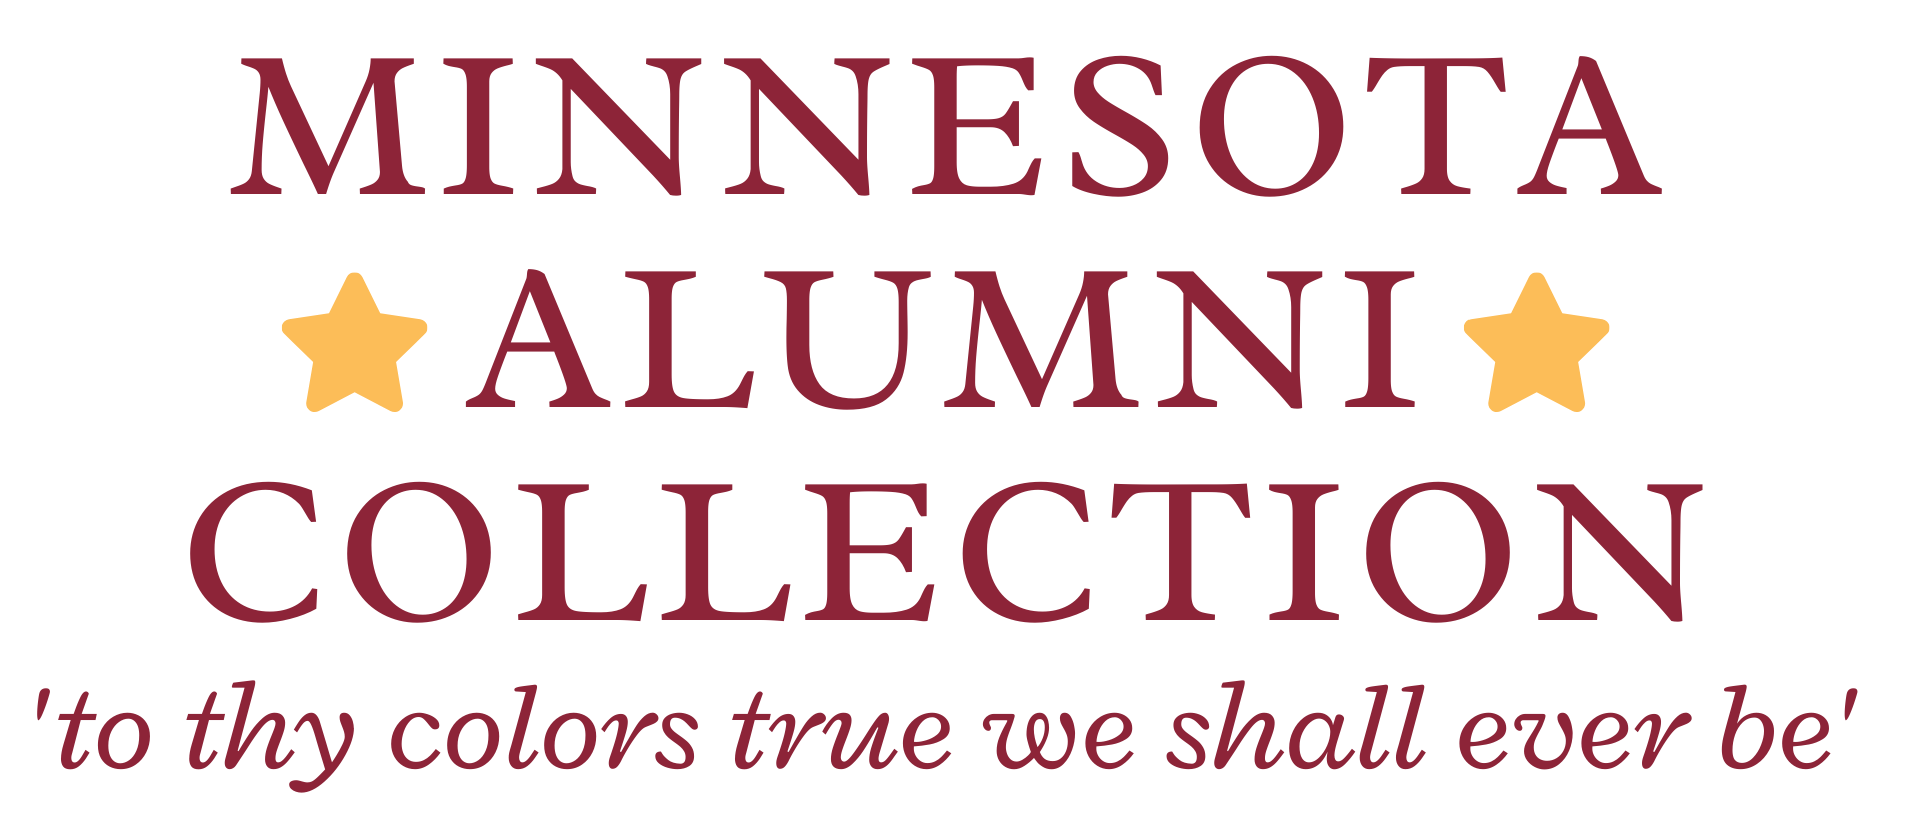 Minnesota Alumni Collection with gold stars